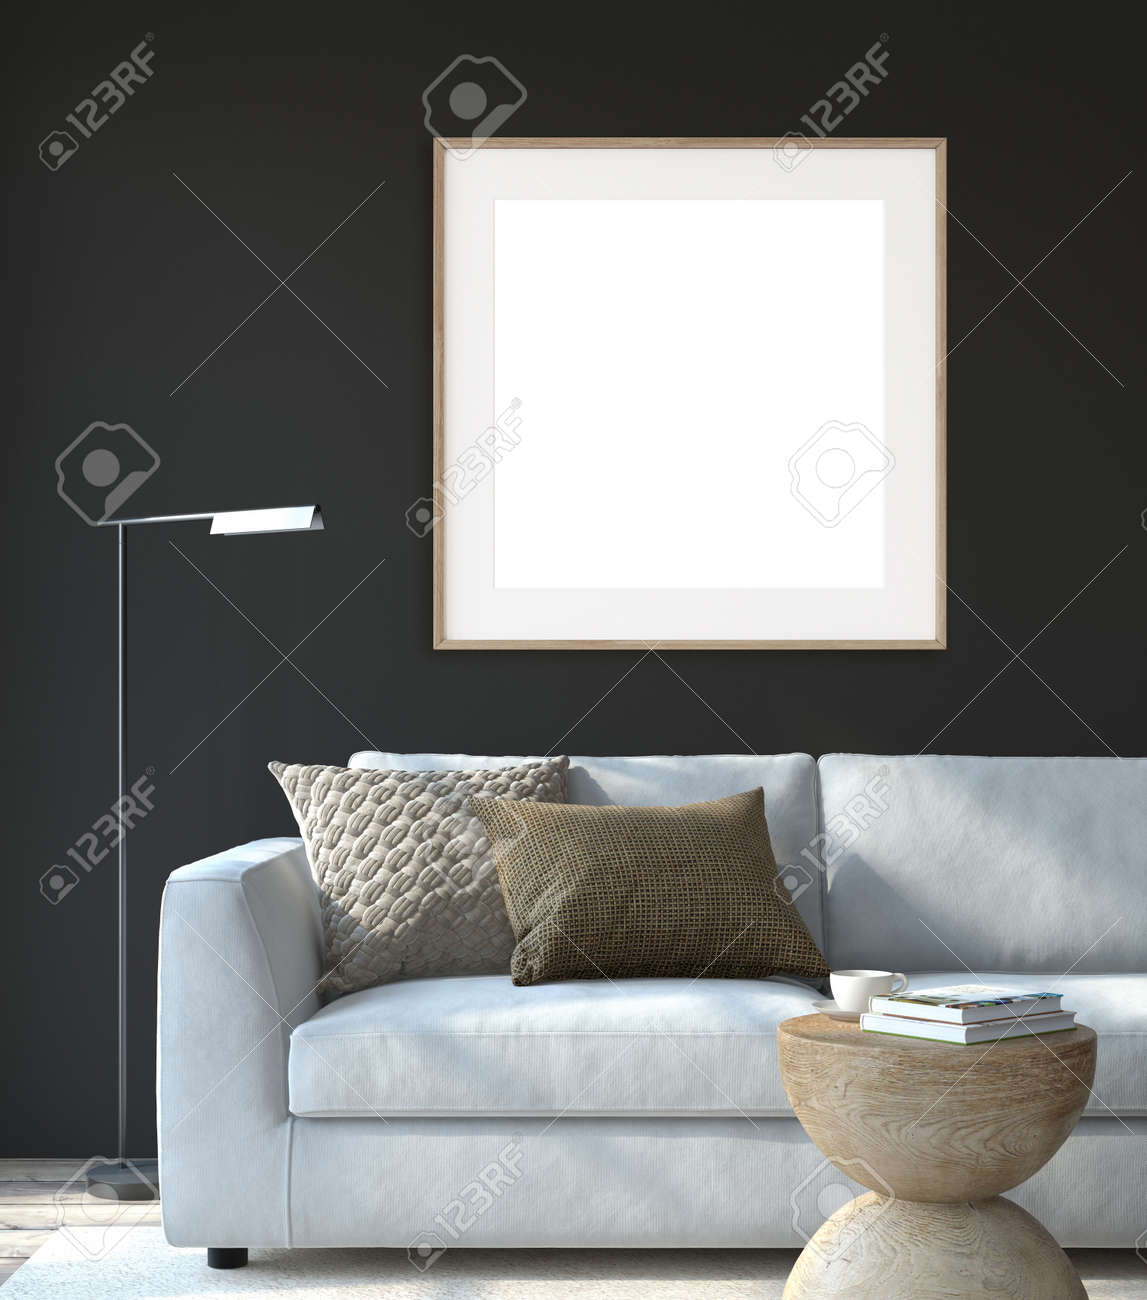 Modern living room interior. Interior and frame mockup. The white couch near black wall. 3d render. - 164758588